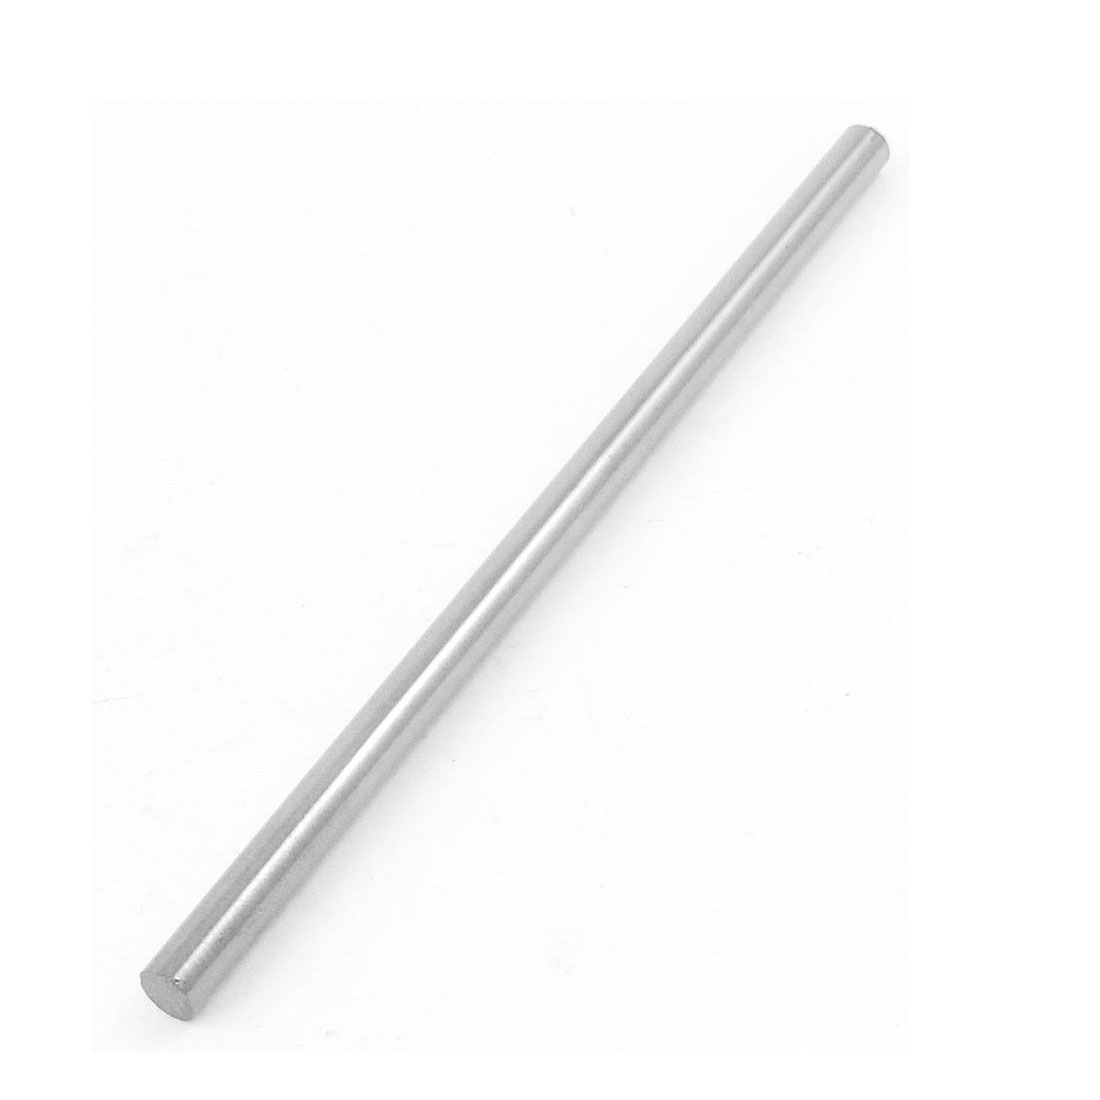 2.8mm x 102mm Graving Tool Round Turning Lathe Bars Silver Tone